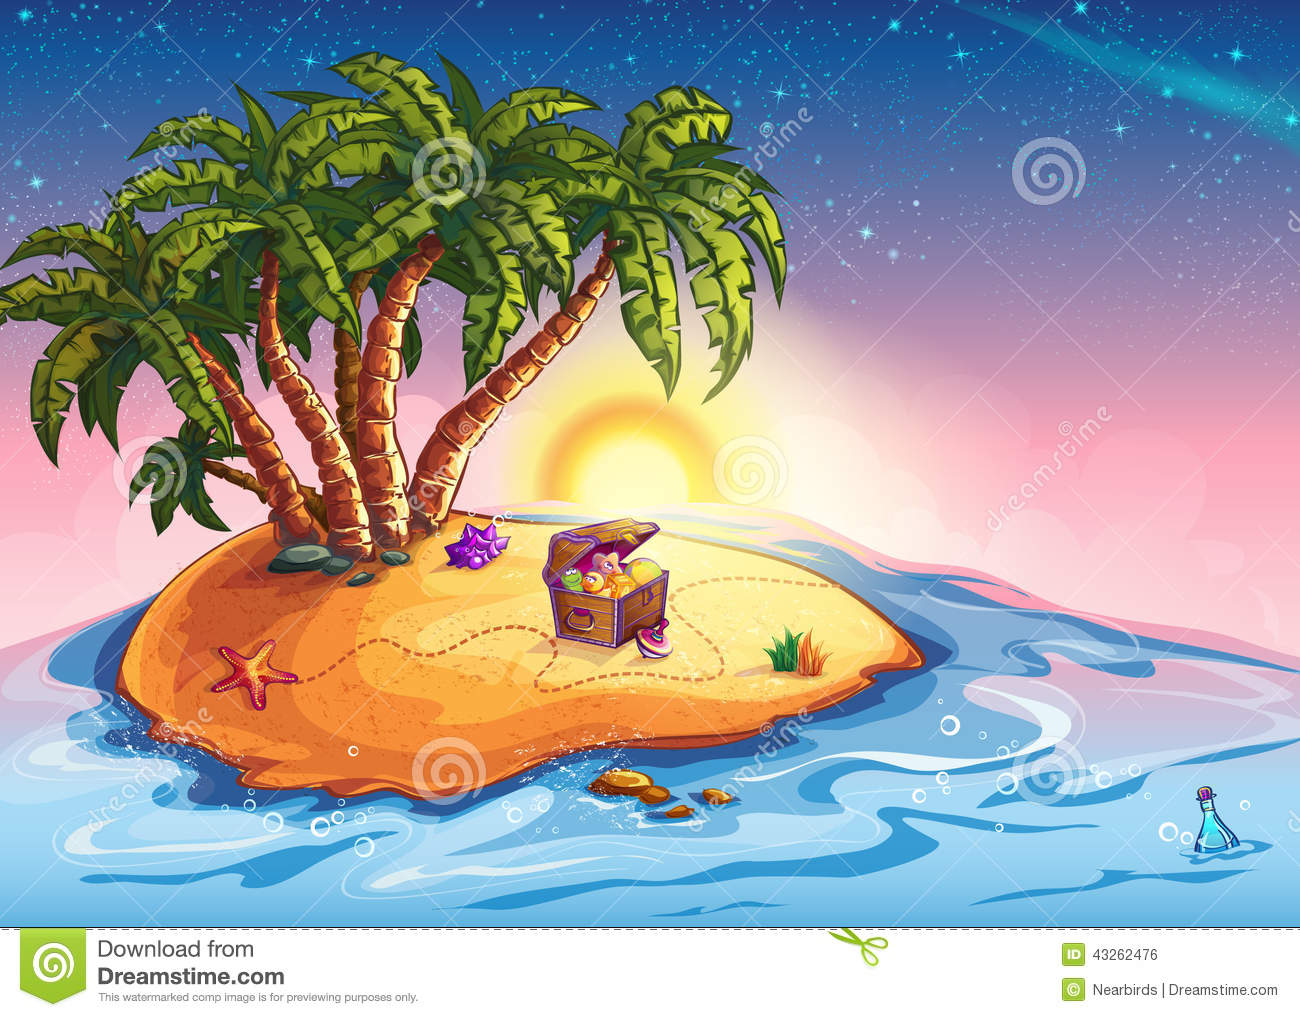 Treasure Toys Cartoon : Illustration island with palm trees and a treasure chest